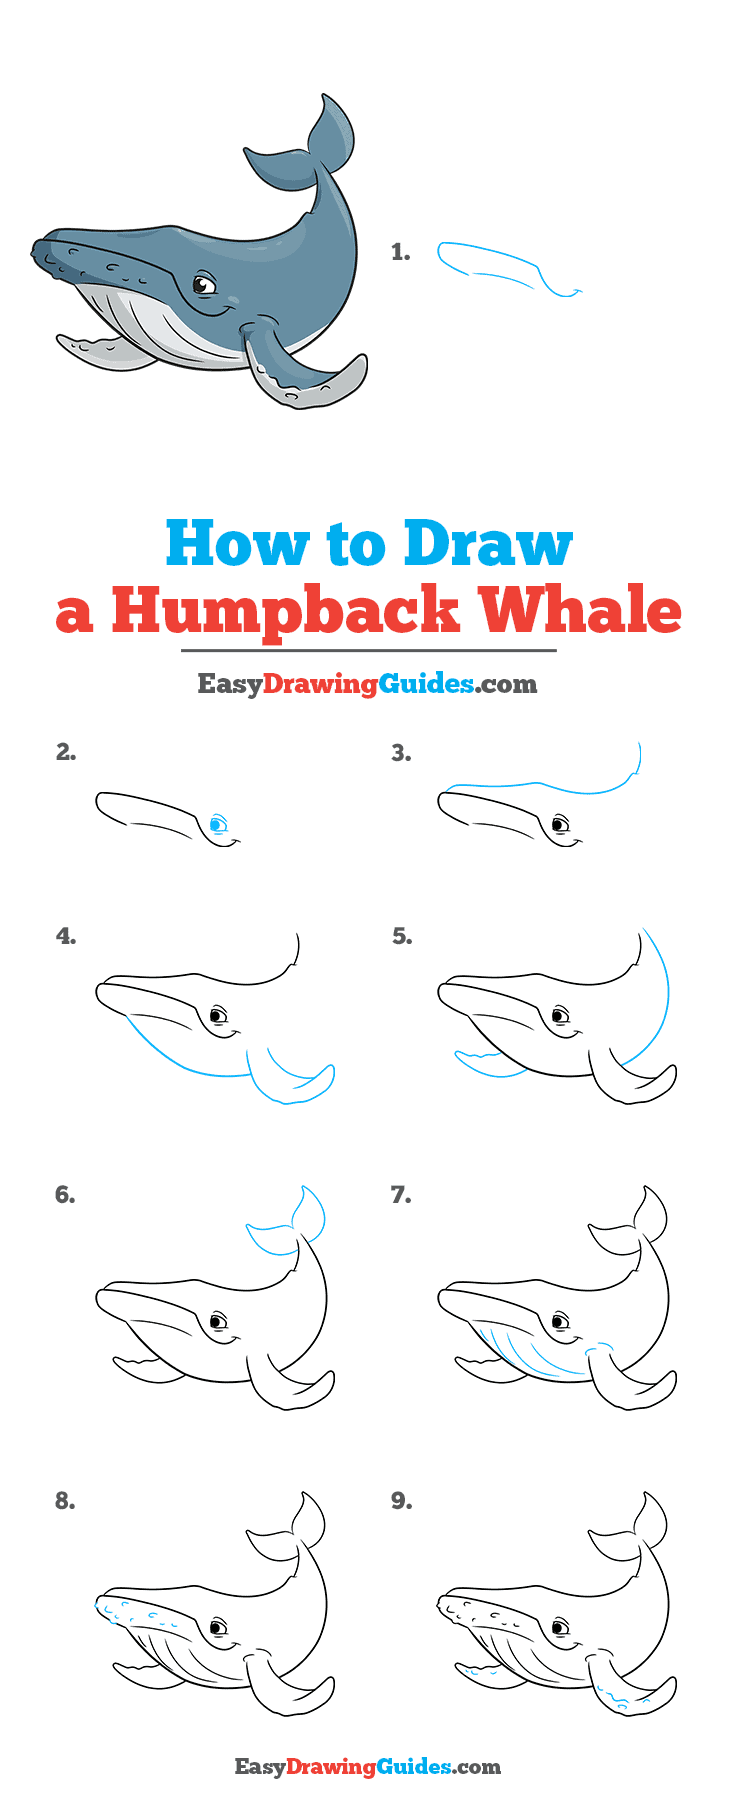 How to Draw a Humpback Whale Step by Step Tutorial Image